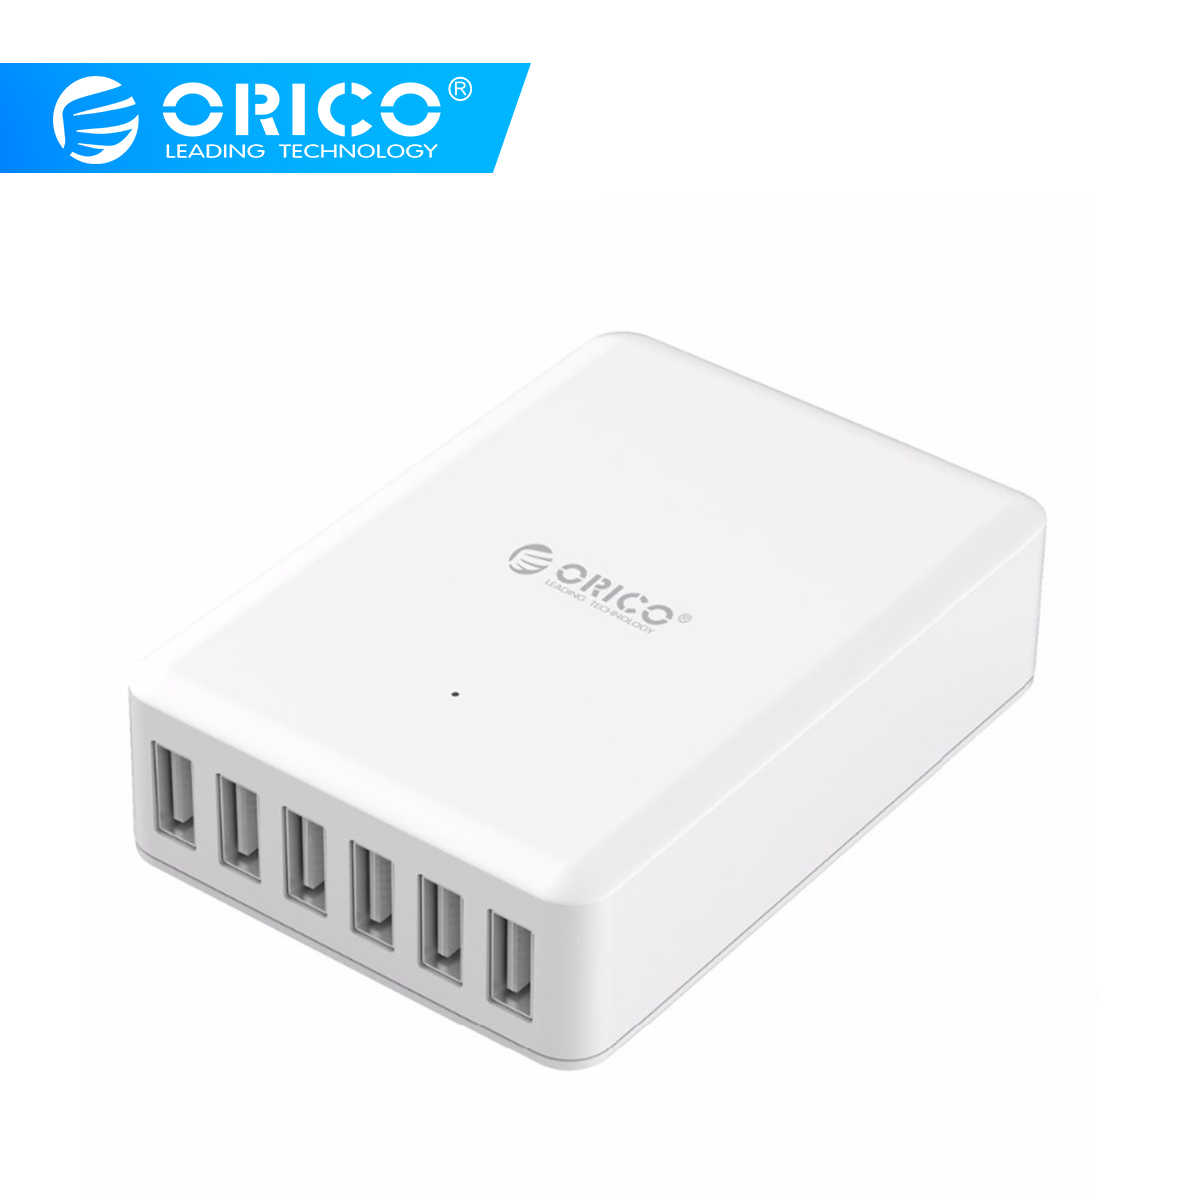 Orico Universal USB Charger 6 Port Smart Charger 5V2. 4A Max Output 50W Ponsel Desktop Charger untuk Iphone Samsung Xiaomi